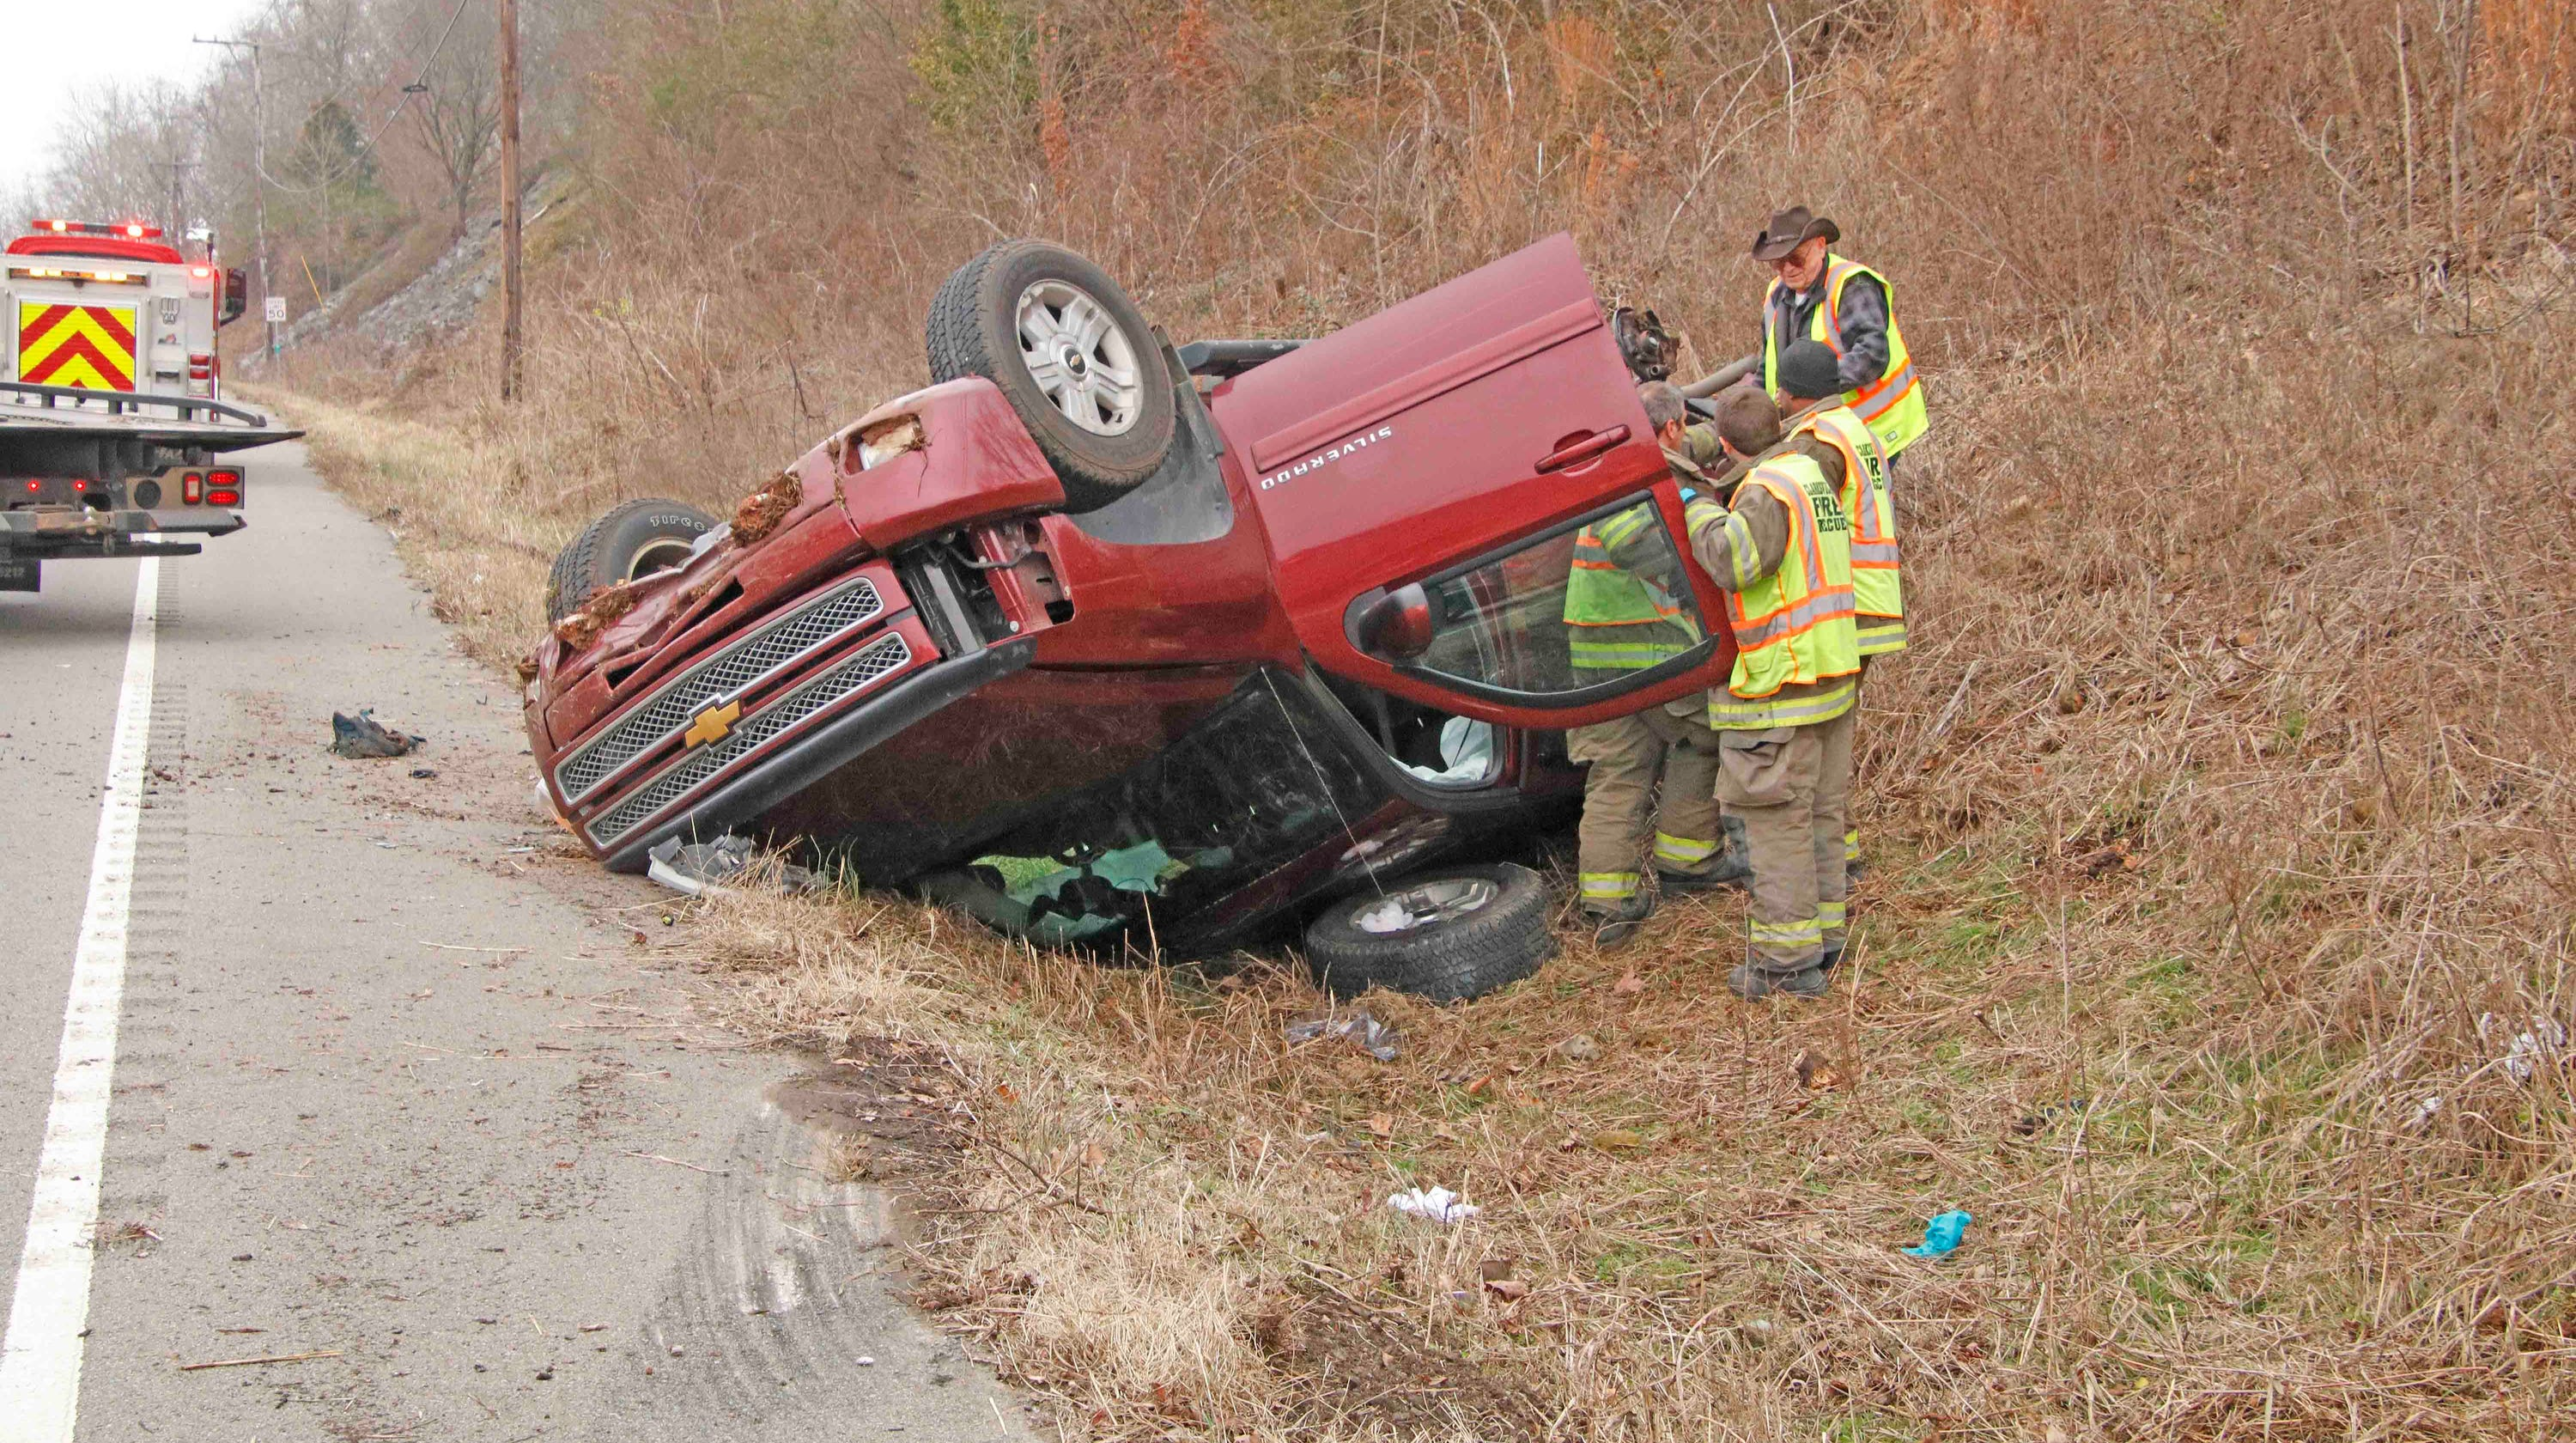 Brakes fail, sending SUV into collision with truck on Bypass